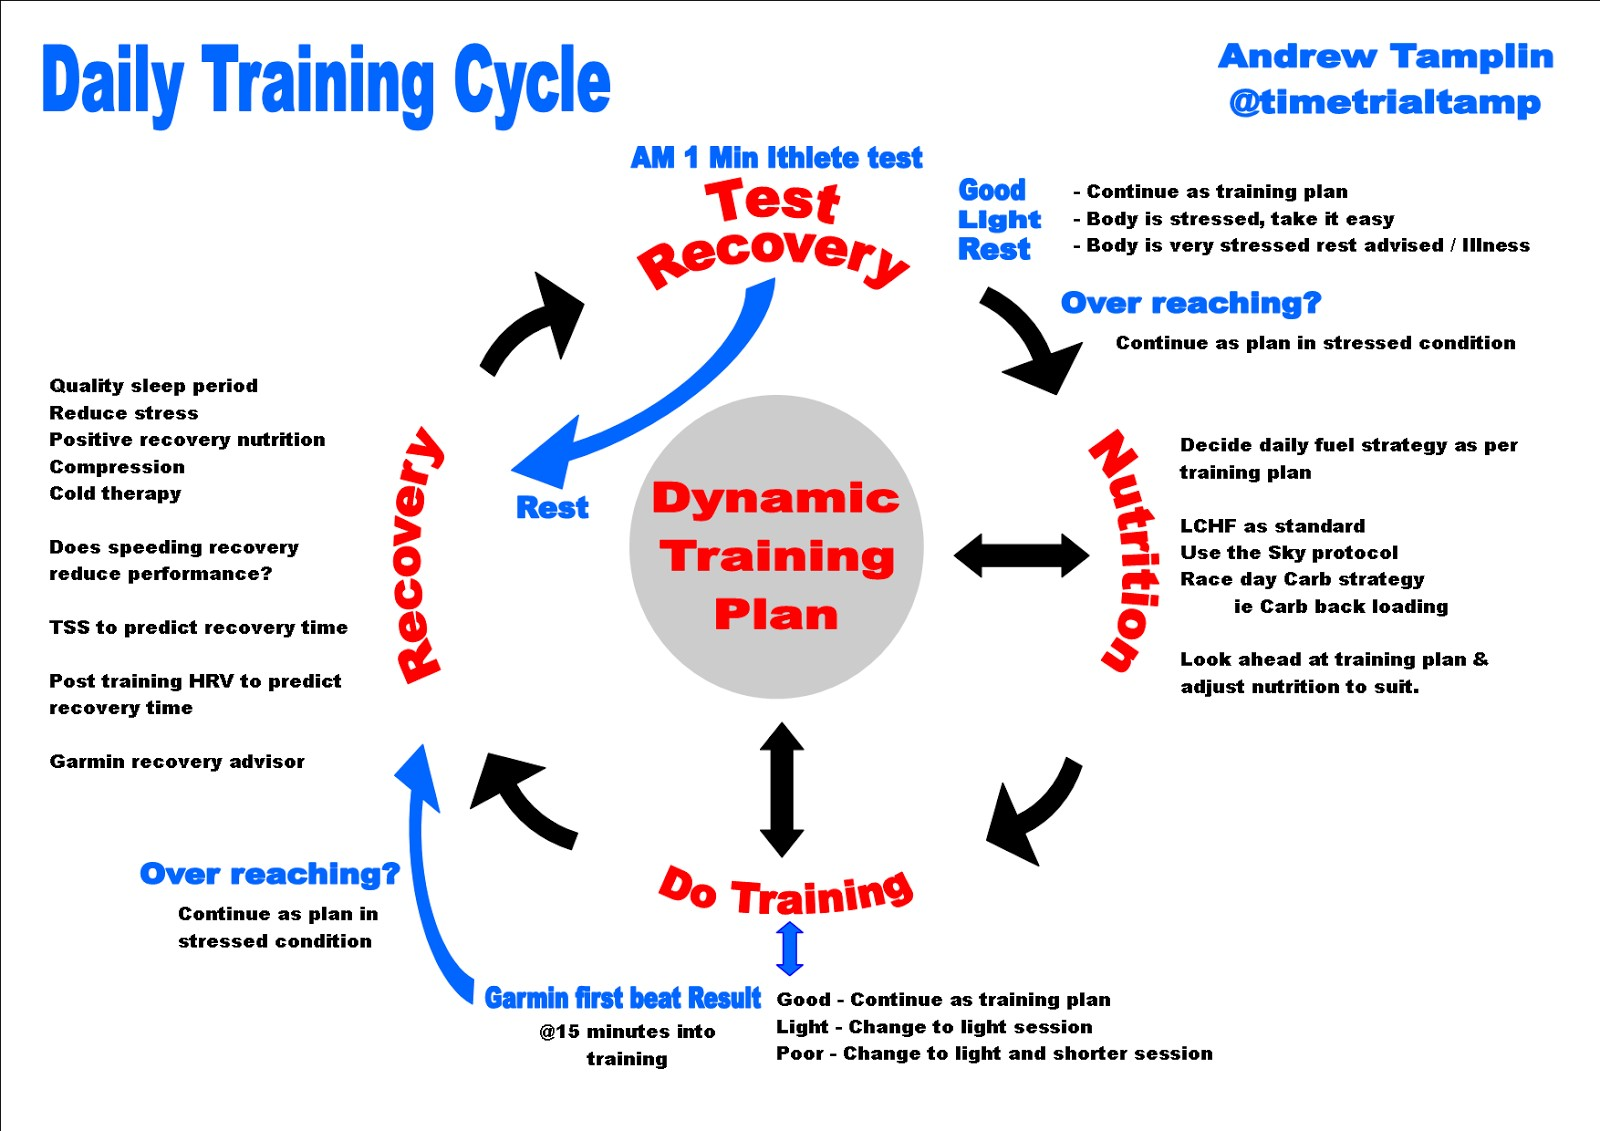 Training cycle infographic